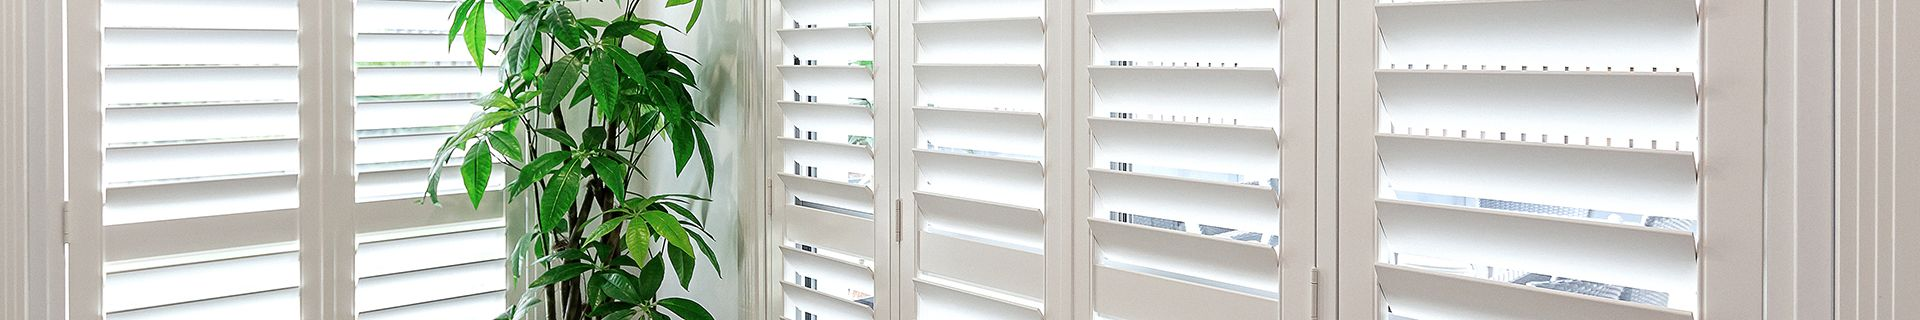 White venetian blinds with indoor plant.